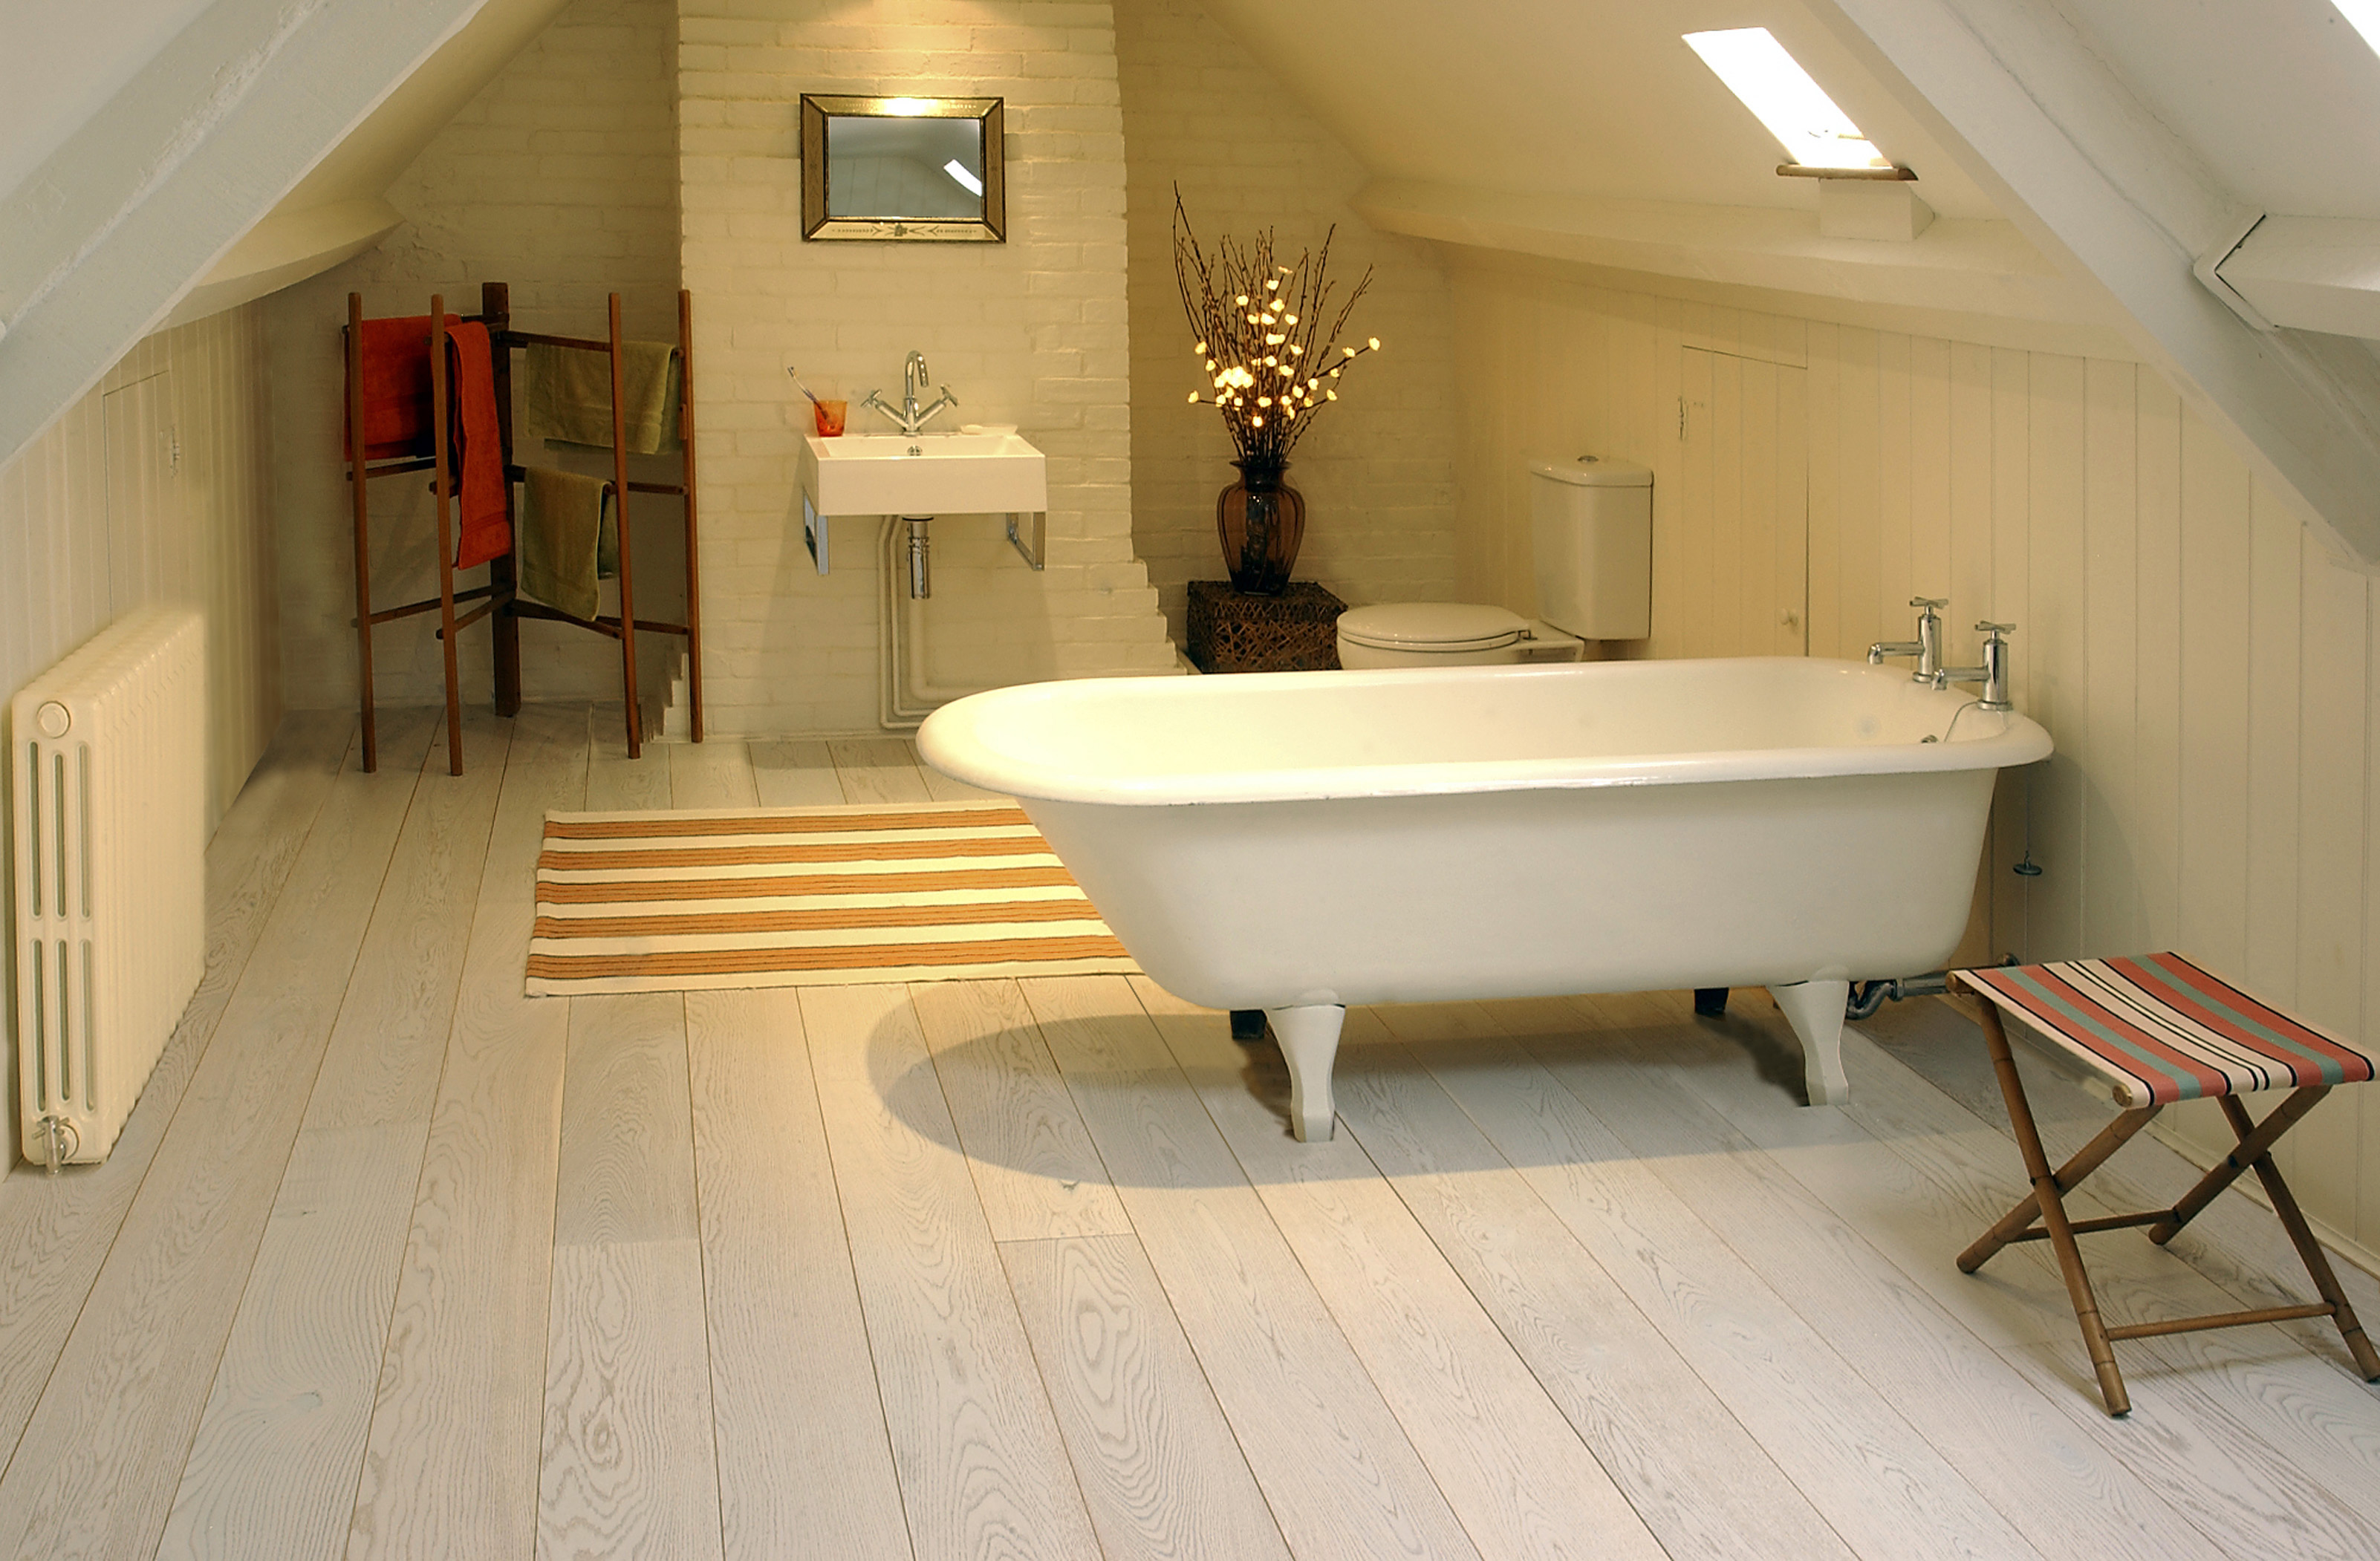 Wood Floors For Bathrooms Emiliesbeautycom - Best flooring to use in bathroom